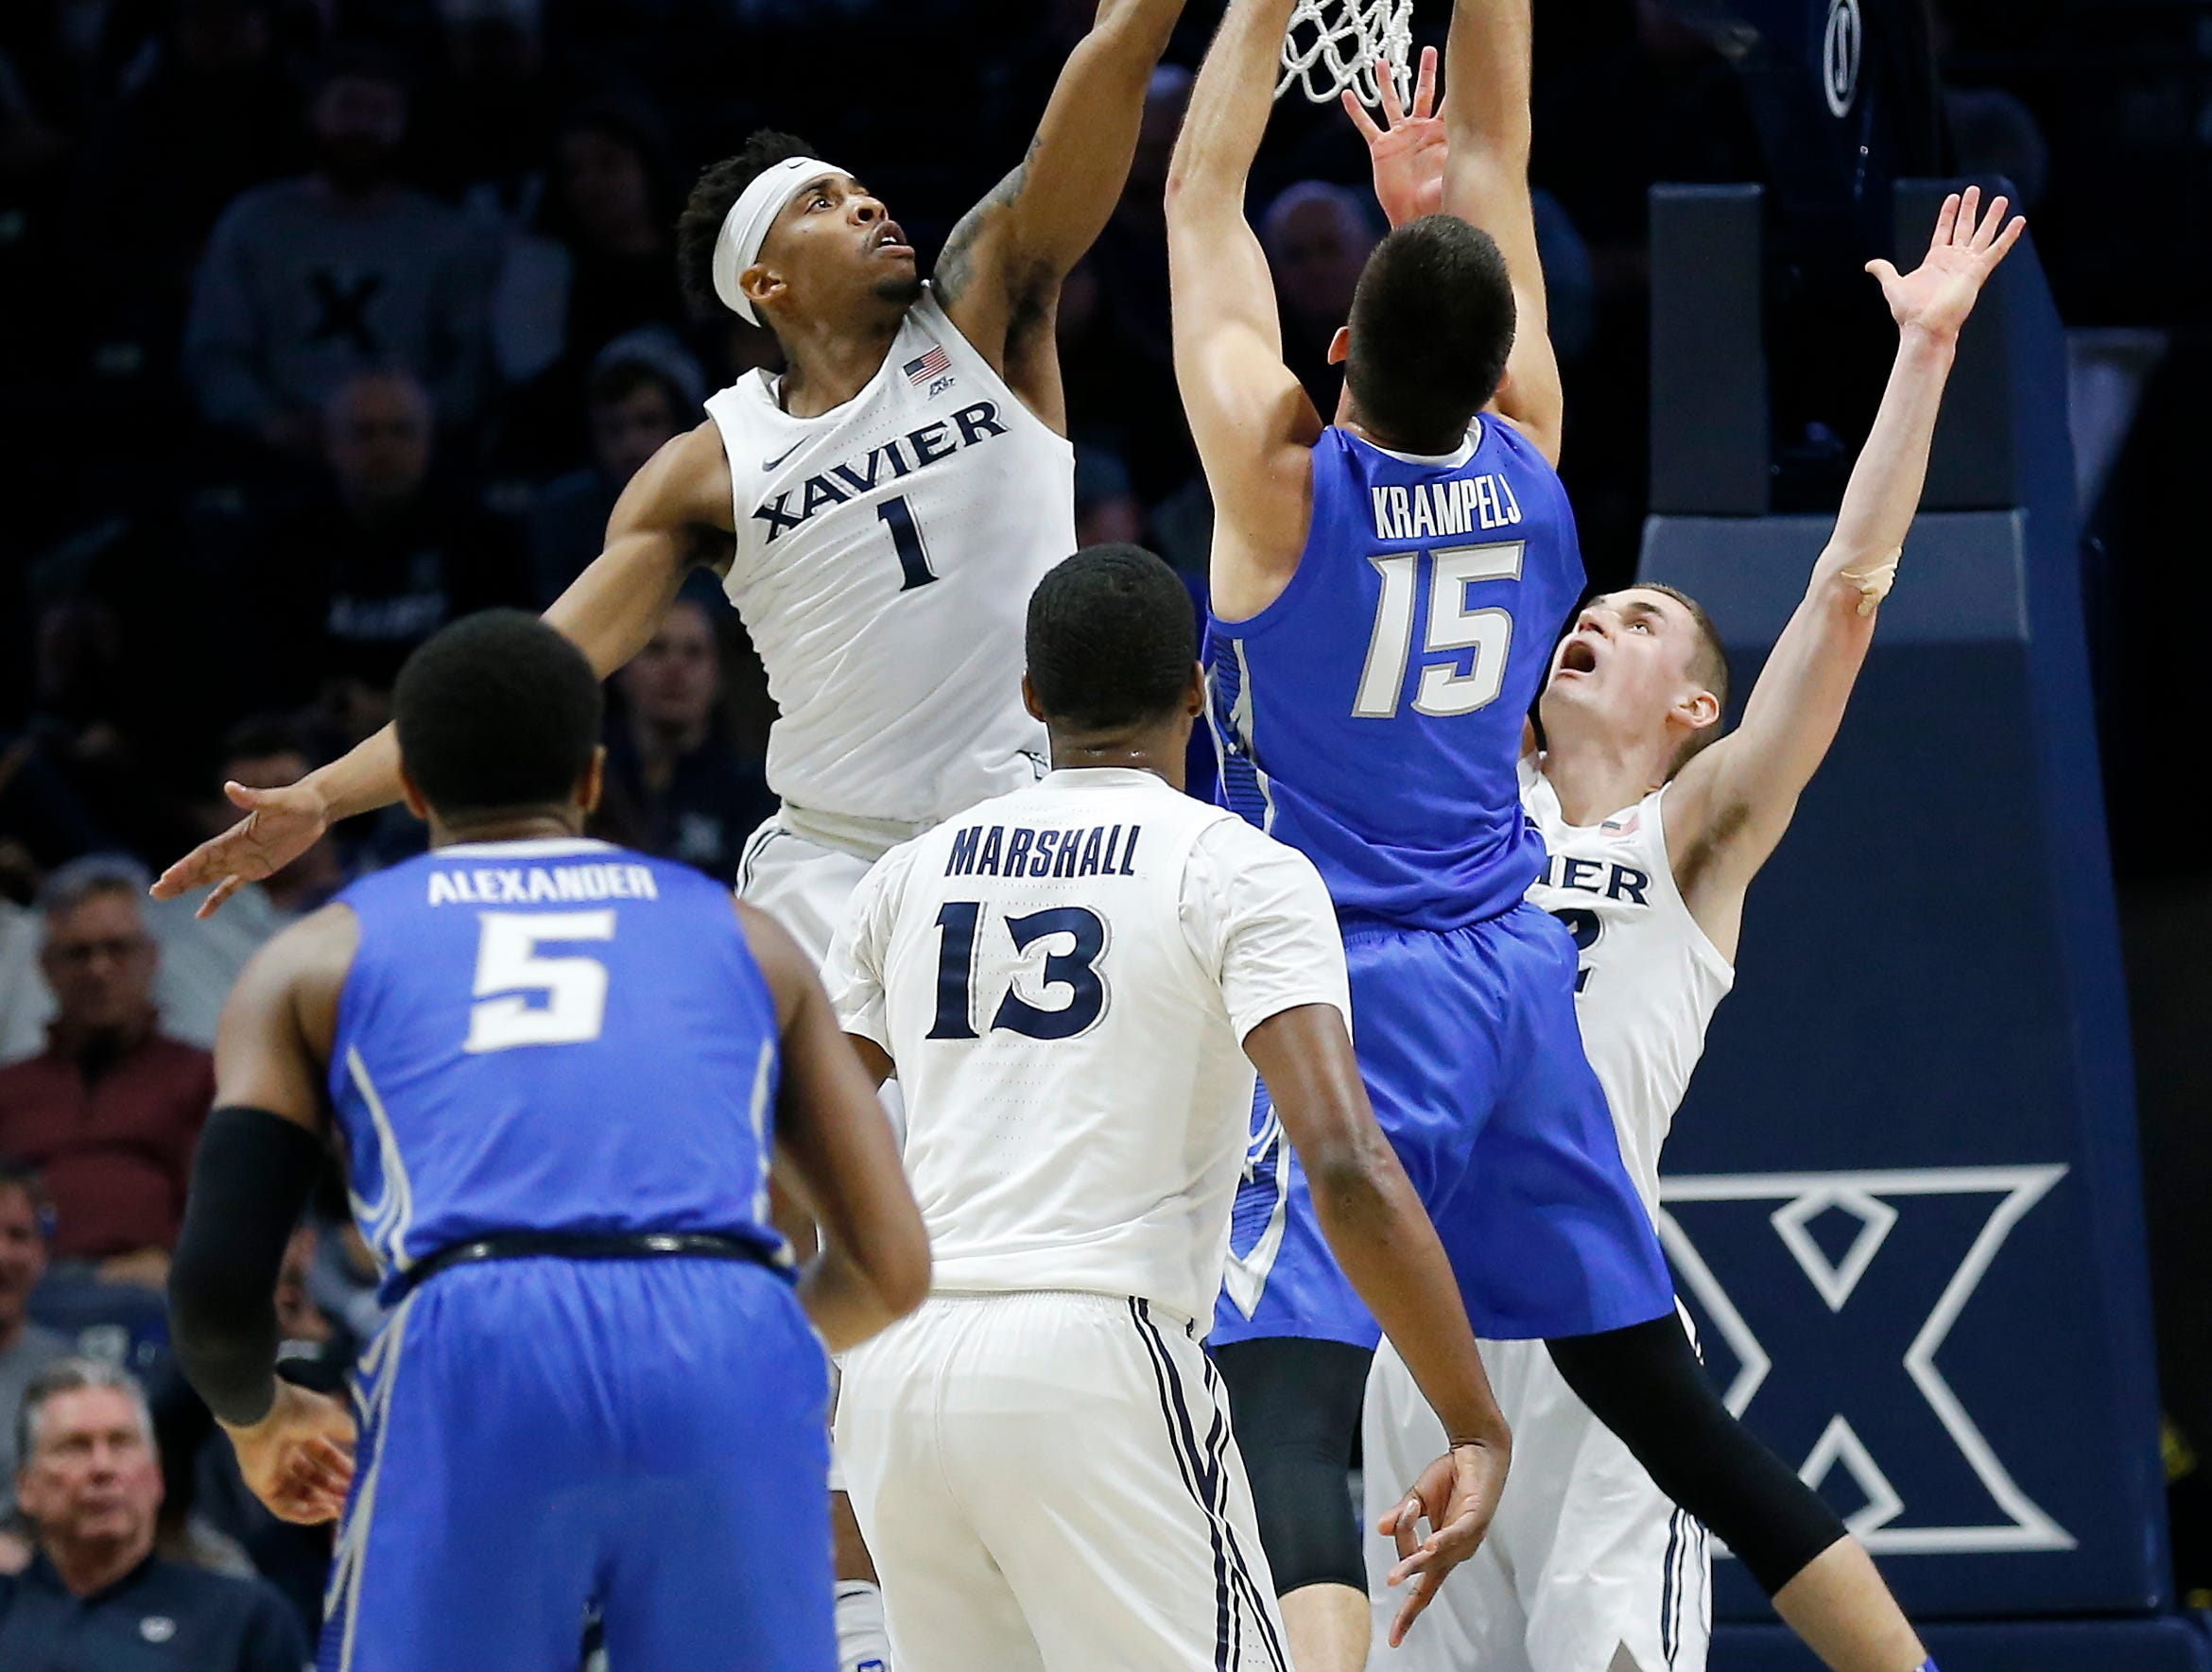 Xavier Musketeers guard Paul Scruggs (1) stretches to block a shot by Creighton Bluejays forward Martin Krampelj (15) in the first half of the NCAA Big East Conference basketball game between the Xavier Musketeers and the Creighton Bluejays at Xavier's Cintas Center in Cincinnati on Wednesday, Feb. 13, 2019. Xavier led 36-30 at halftime.